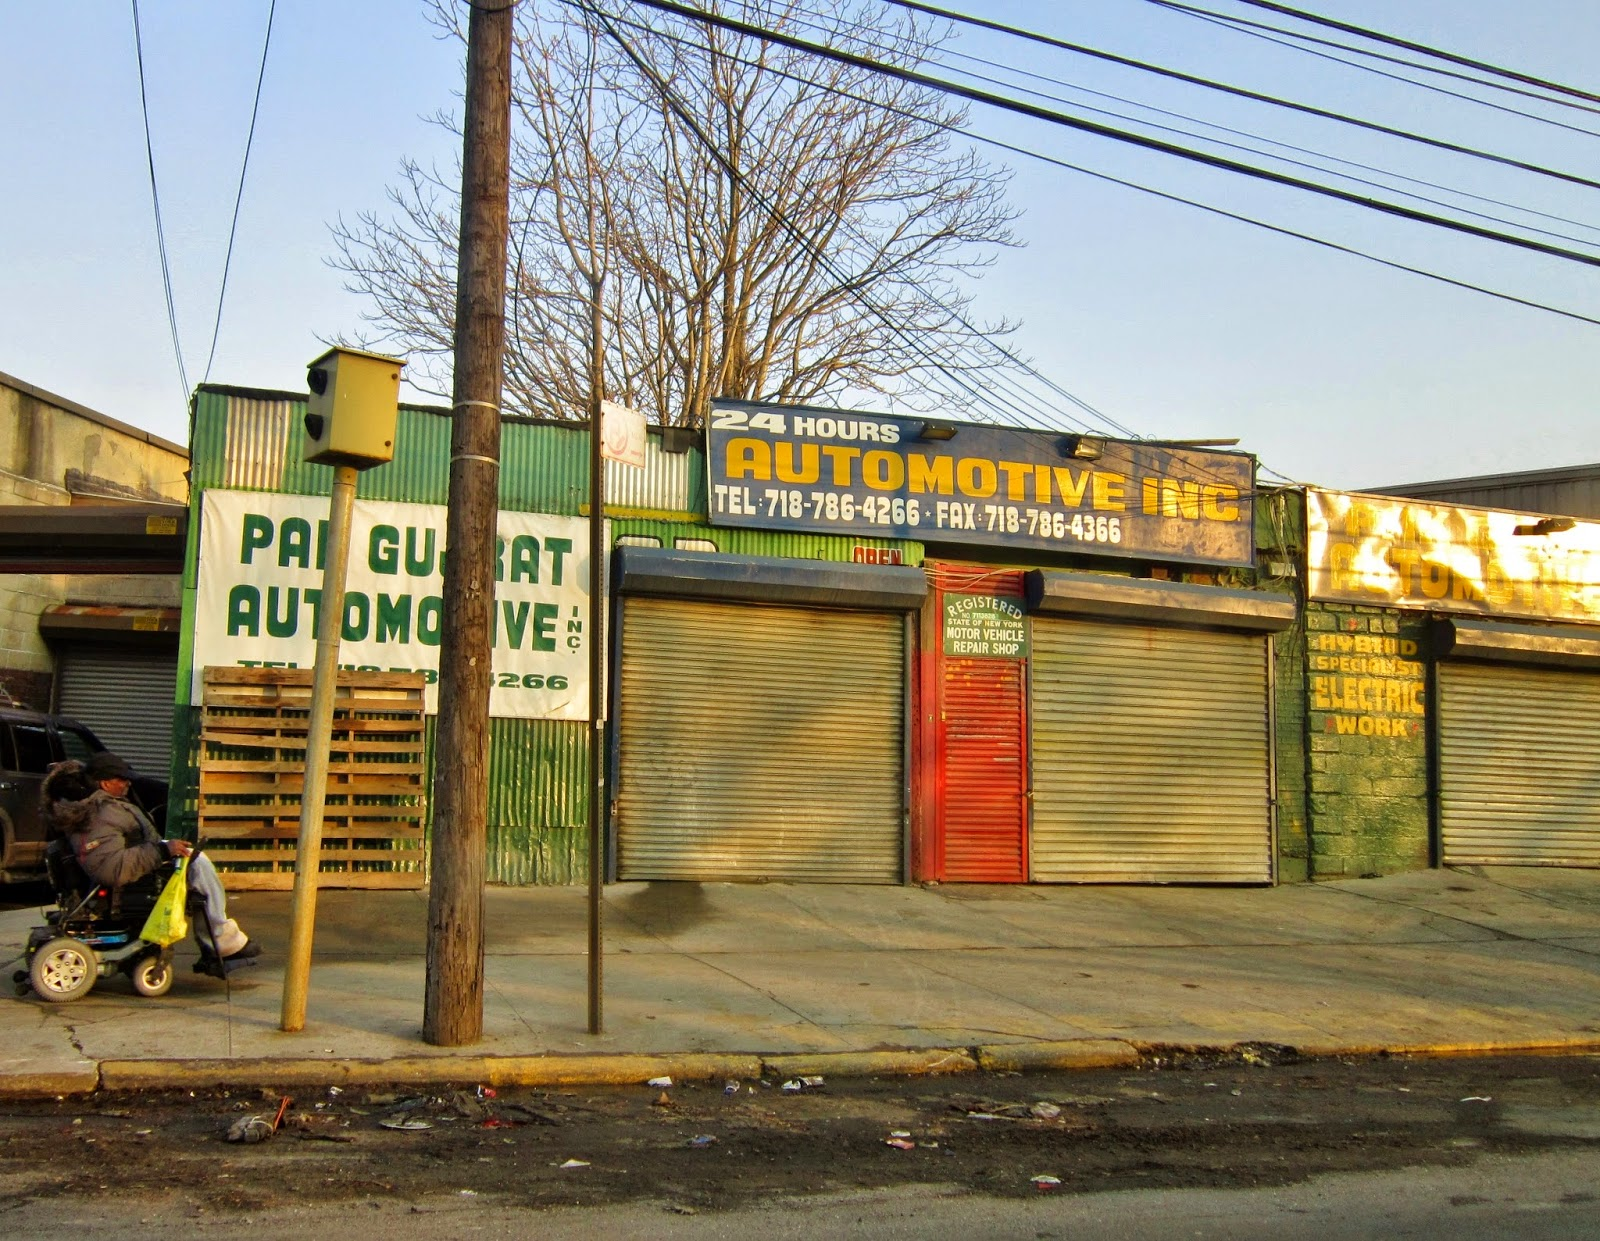 One More Folded Sunset: Autoshops, Queensbridge